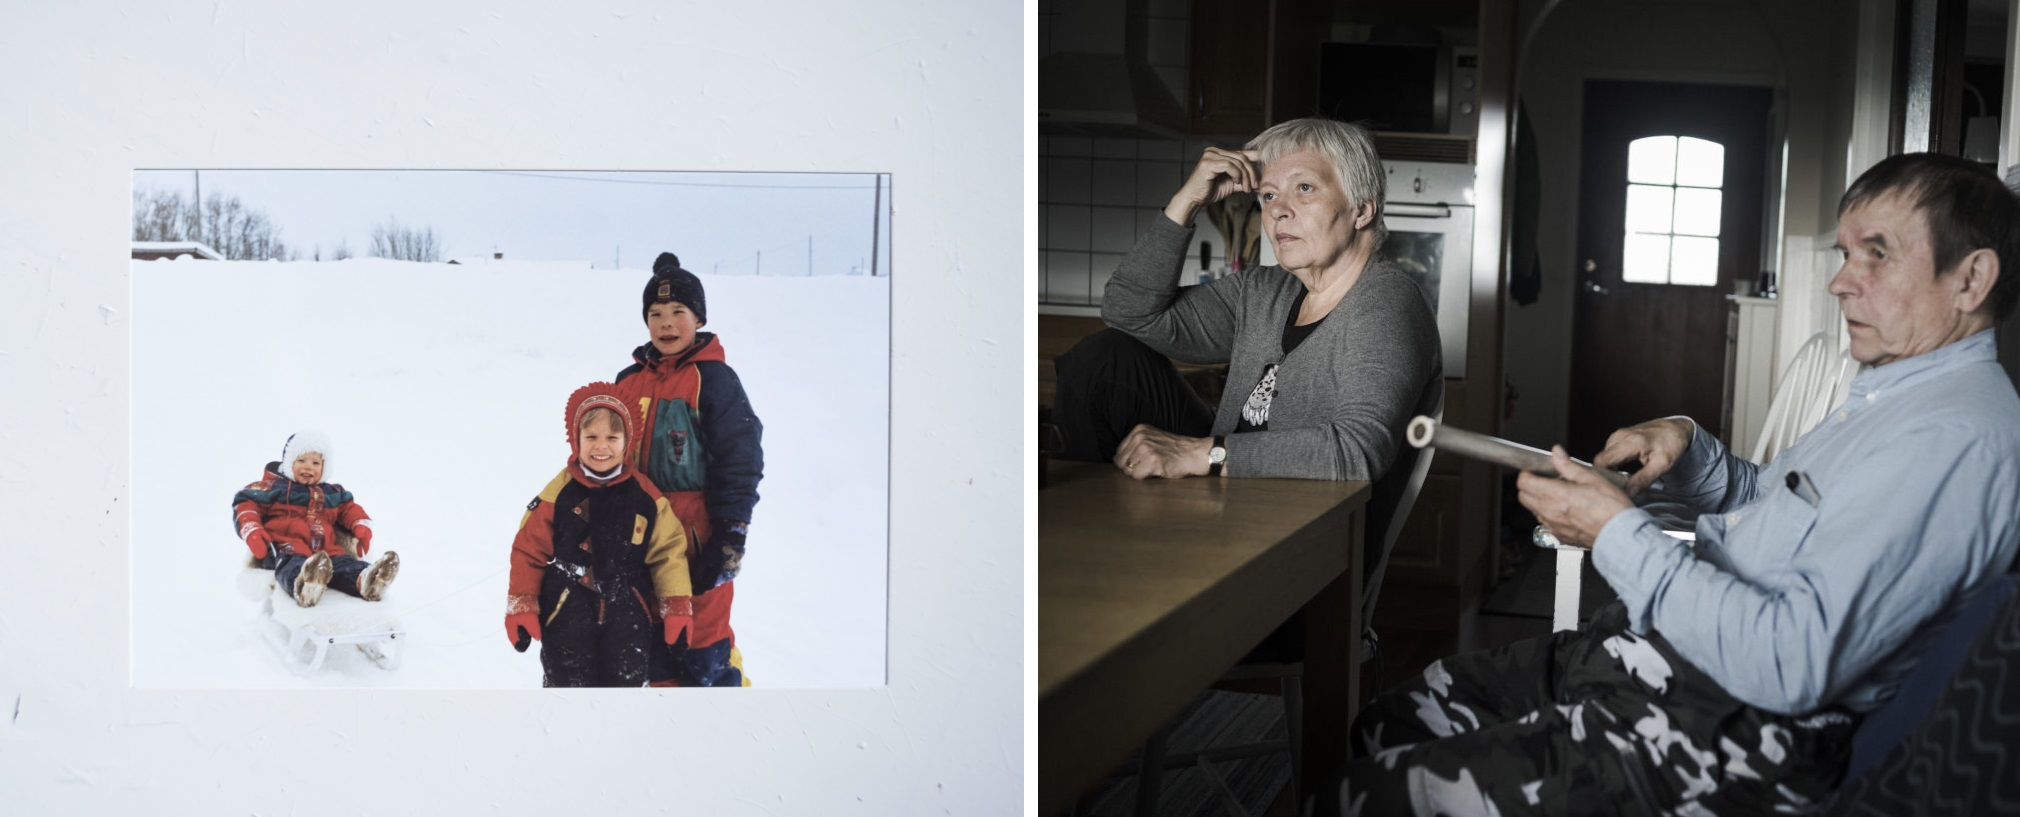 Left: A photo from the Marainen family album shows Heaika (left) and Gustu (right) playing in the snow as children. Right: Randi and Thomas Marainen sit in their kitchen in Nedre Soppero. Photos by Camilla Andersen